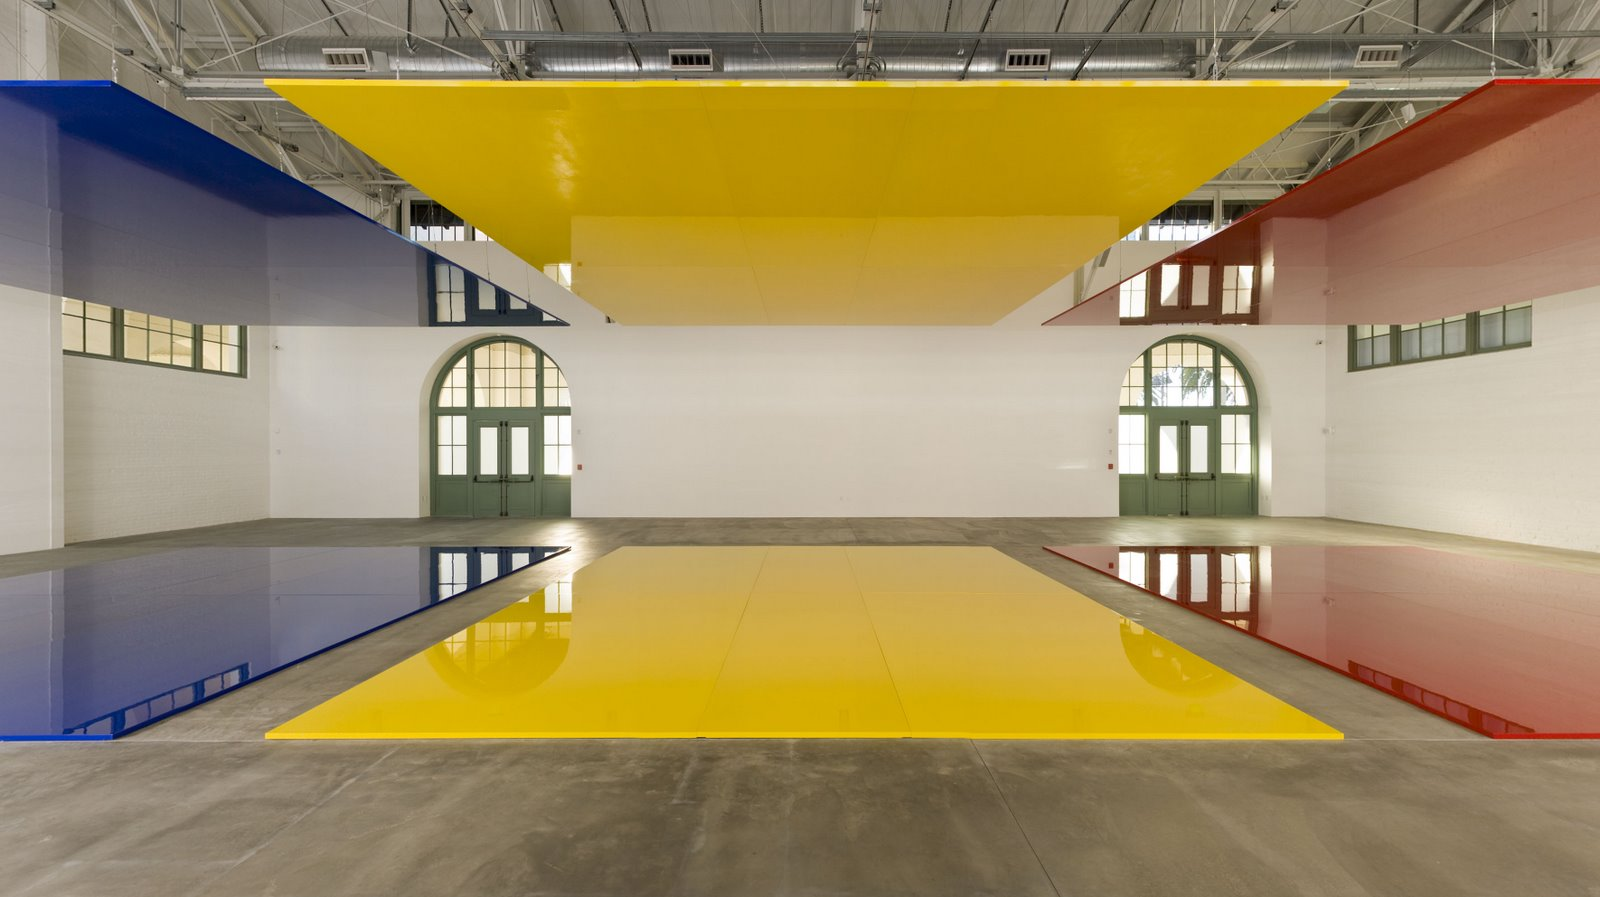 Who's Afraid of Red, Yellow & Blue  (installation view, detail below), 2006-07 polyurethane paint over lacquer on aircraft honeycomb aluminum 24 panels: 132 1/2 x 96 1/2 inches (3.4 x 2.4 m) each; 12 panels:132 1/2 x 48 1/4 inches (3.4 x 1.2 m) each; overall installation dimensions variable. Photography by Philipp Scholz Rittermann ©Robert Irwin/Artists Rights Society, New York